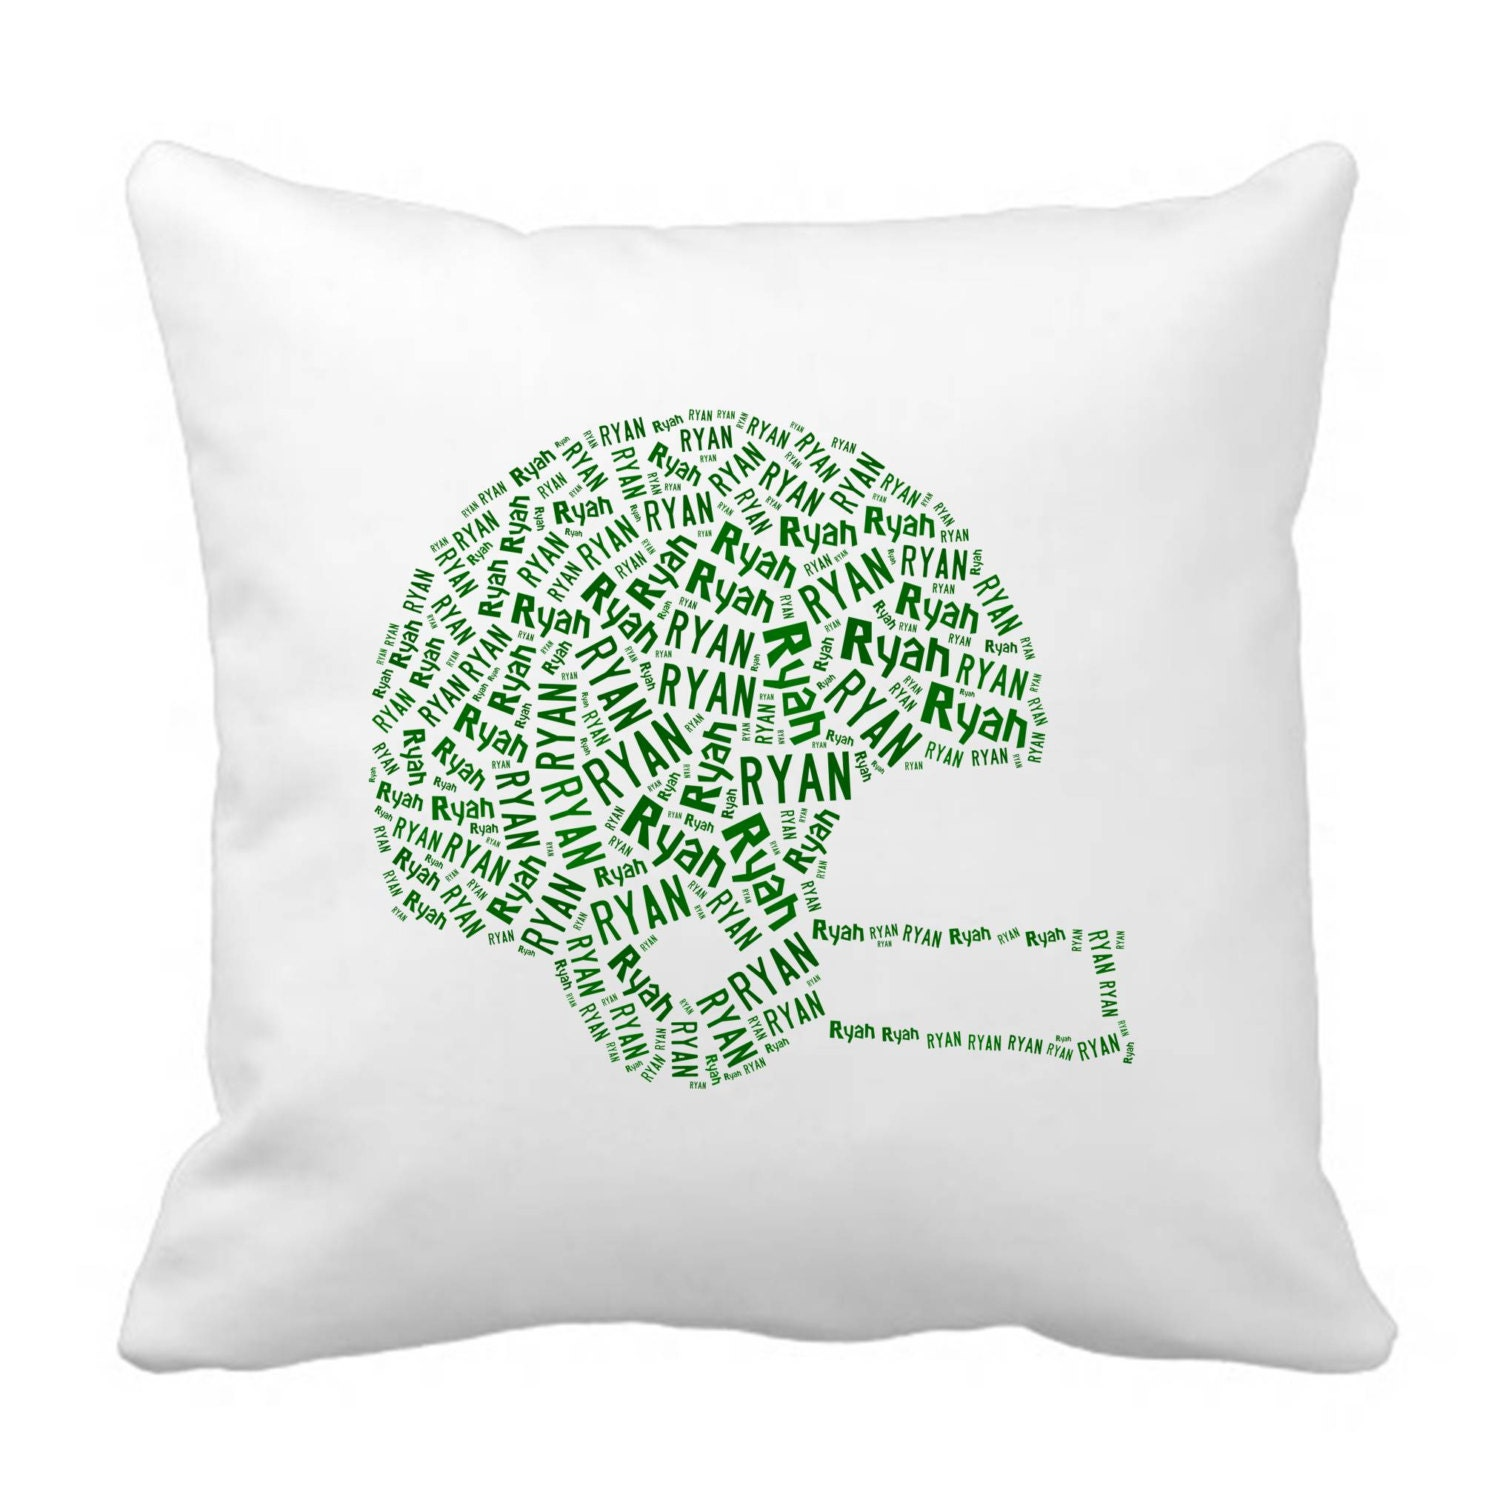 Throw Pillow Covers 20 X 20 : Personalized 20 x 20 Throw Pillow Cover for the Baylor